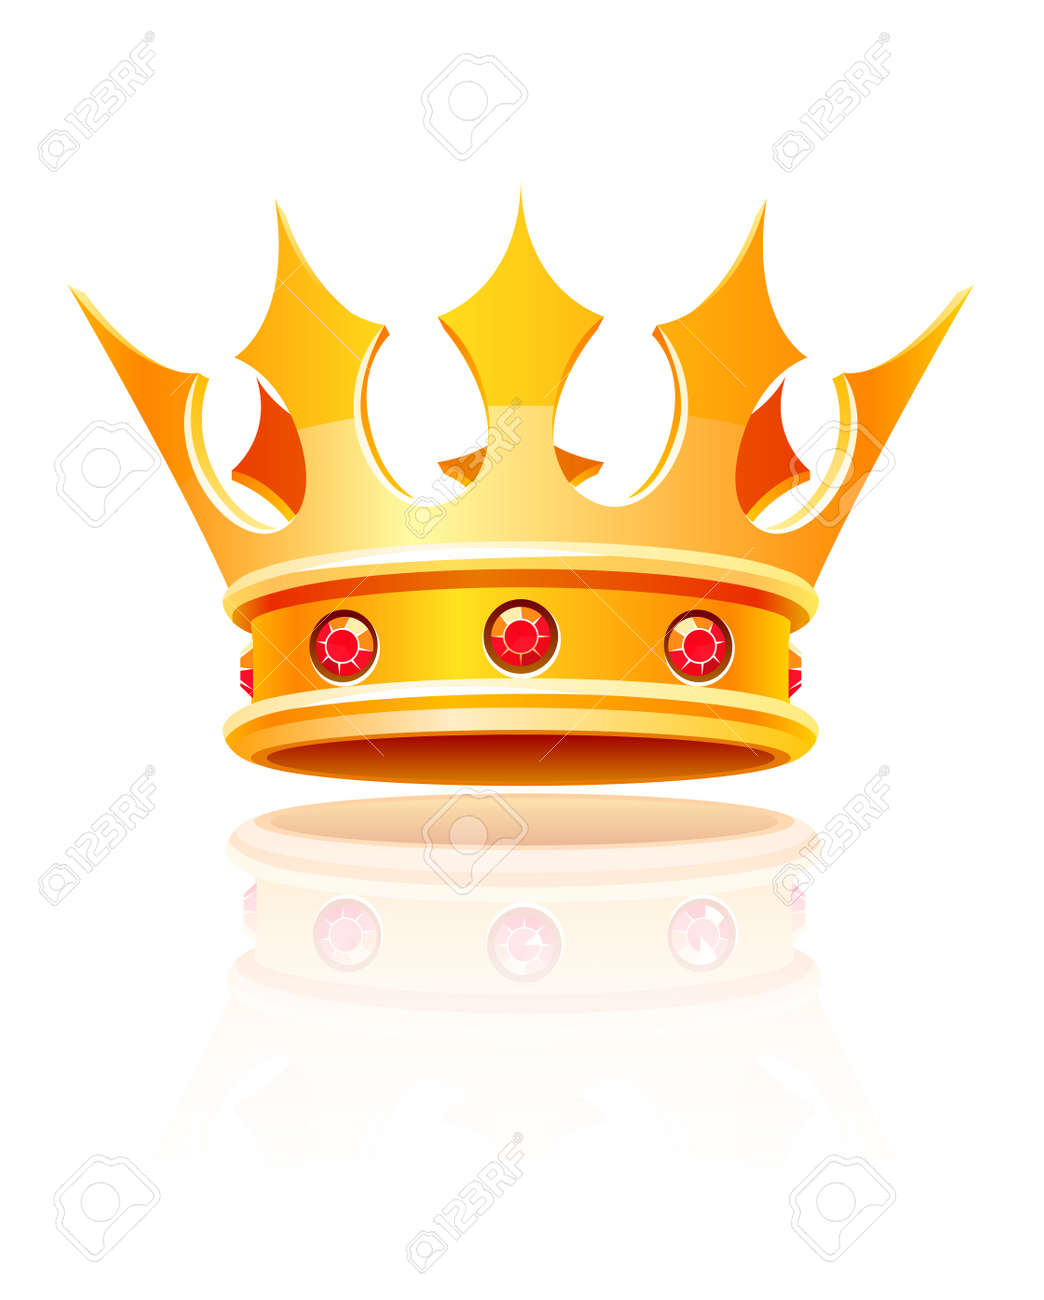 gold royal crown. Vector illustration isolated on white background - 8732300